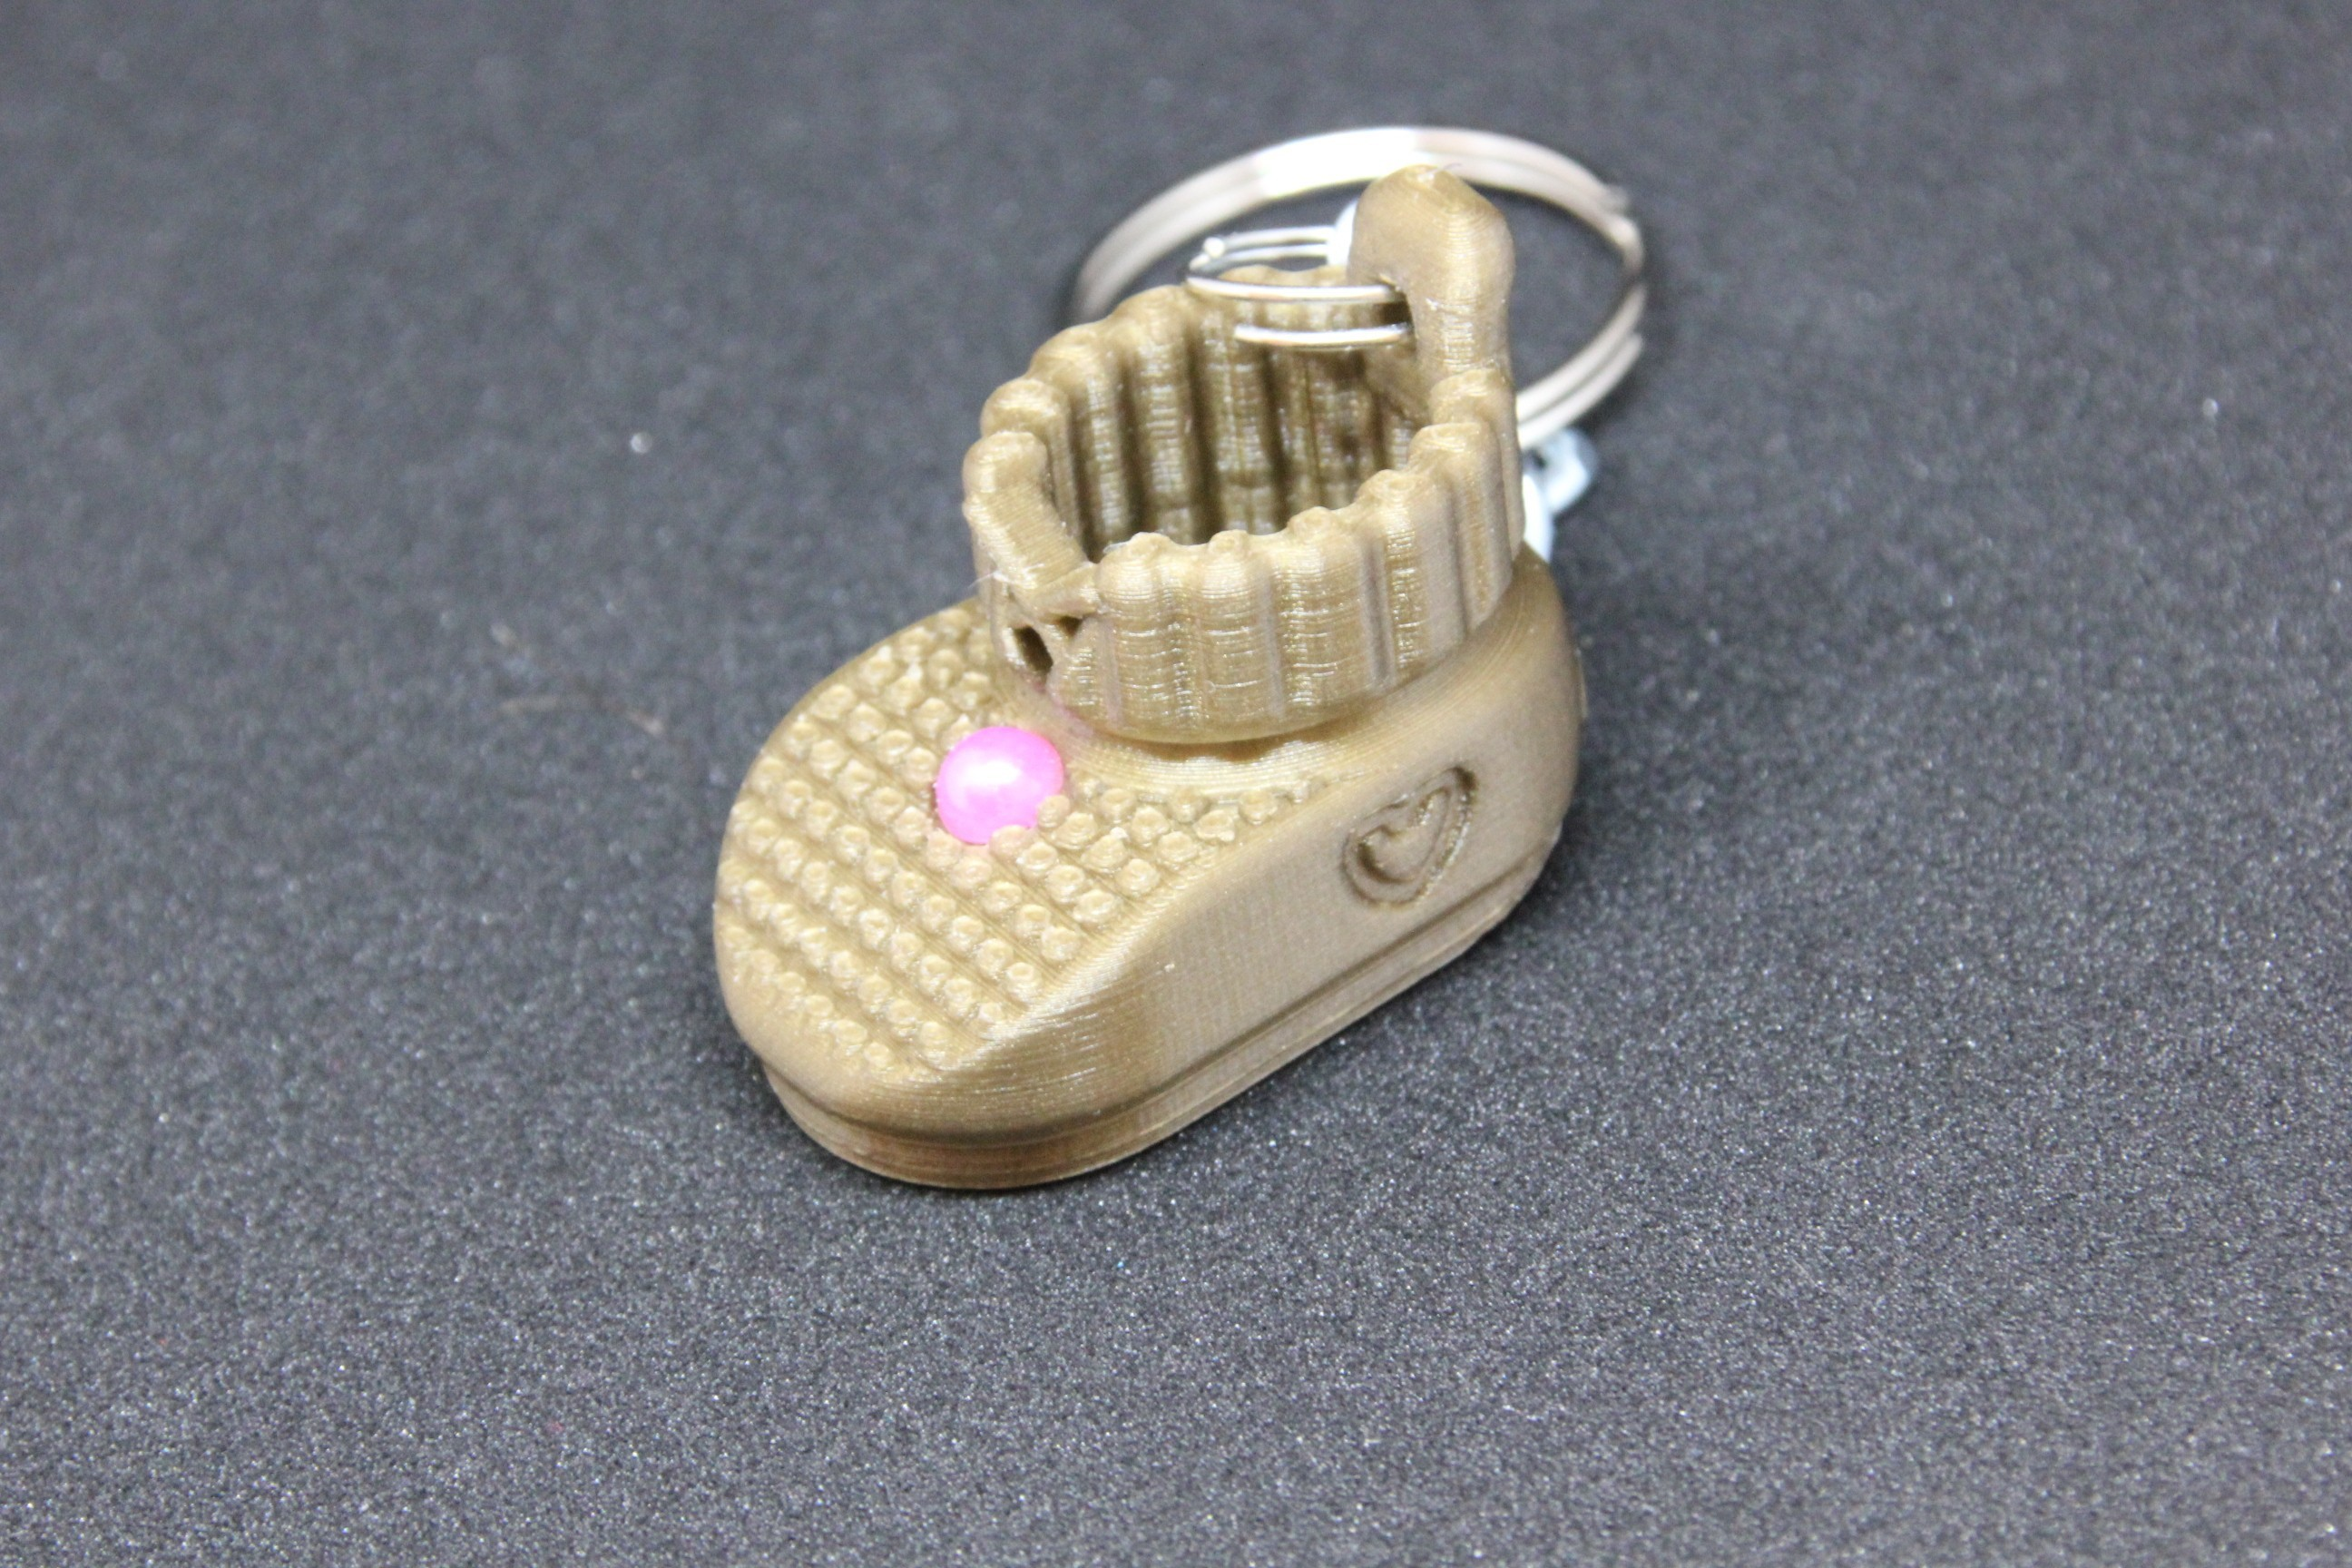 IMG_4115.JPG Download free STL file PLP baby slipper • 3D printer model, PLP